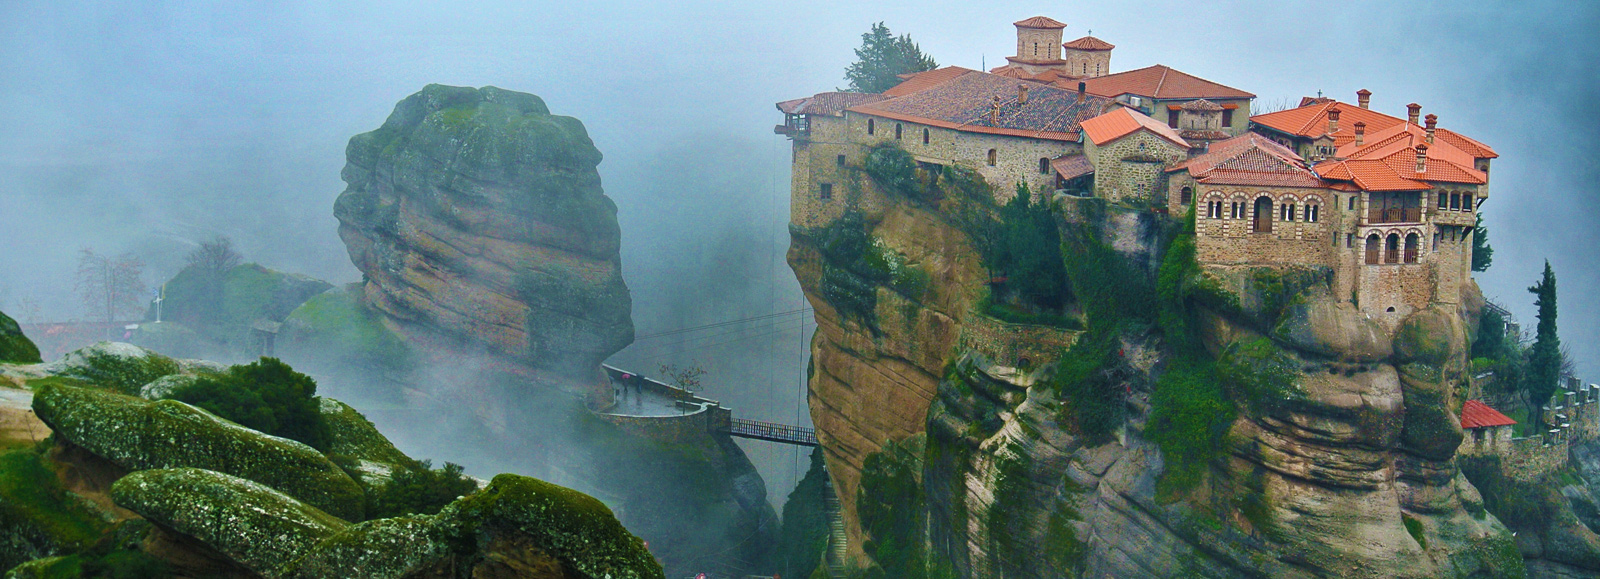 Monastary perched high on rocks in Italy